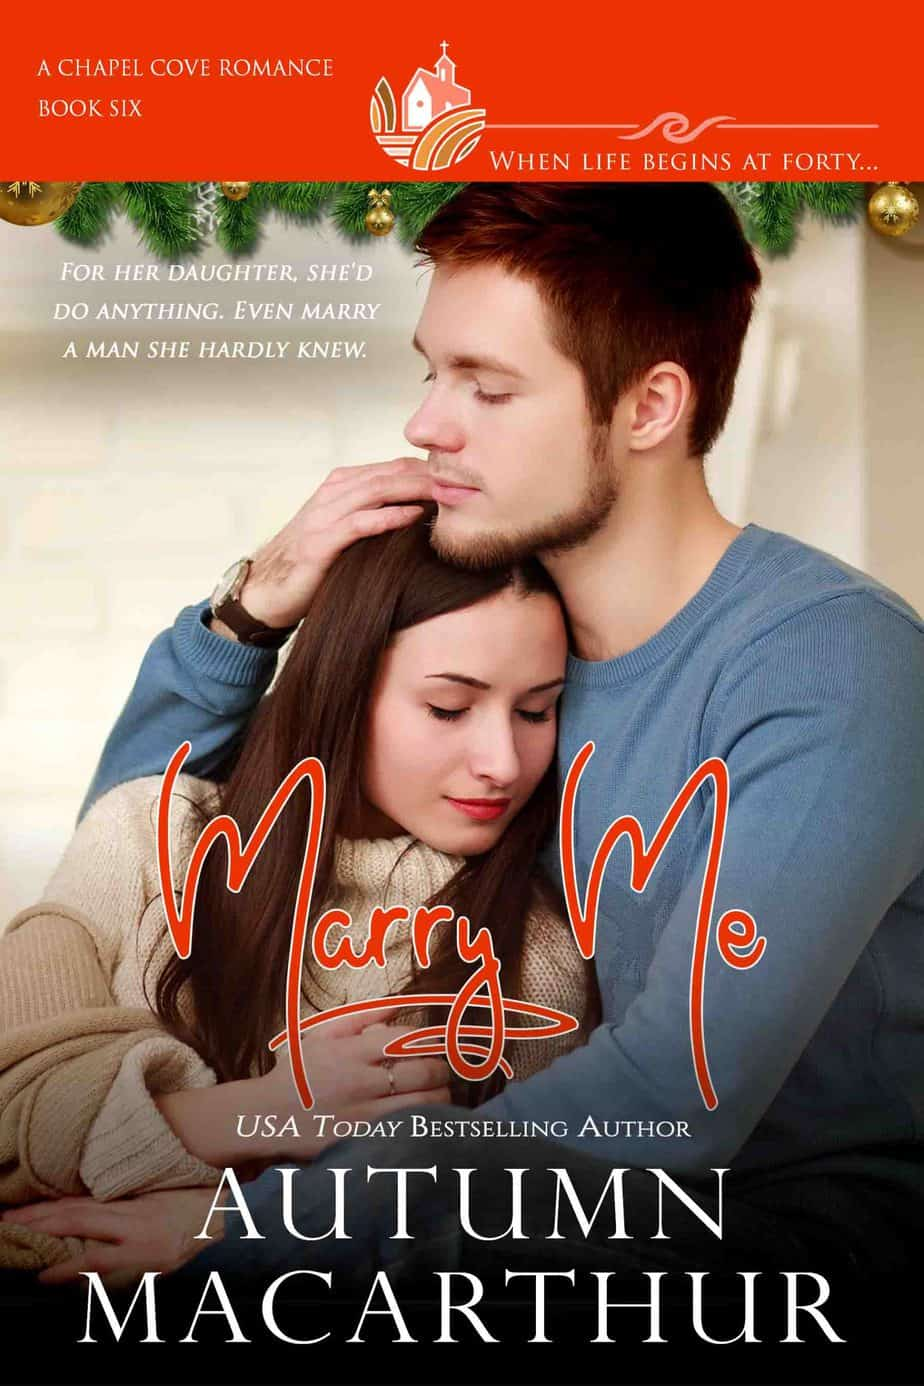 Sweet Christian smll-town marriage of convenience romance, Marry Me, by Autumn Macarthur